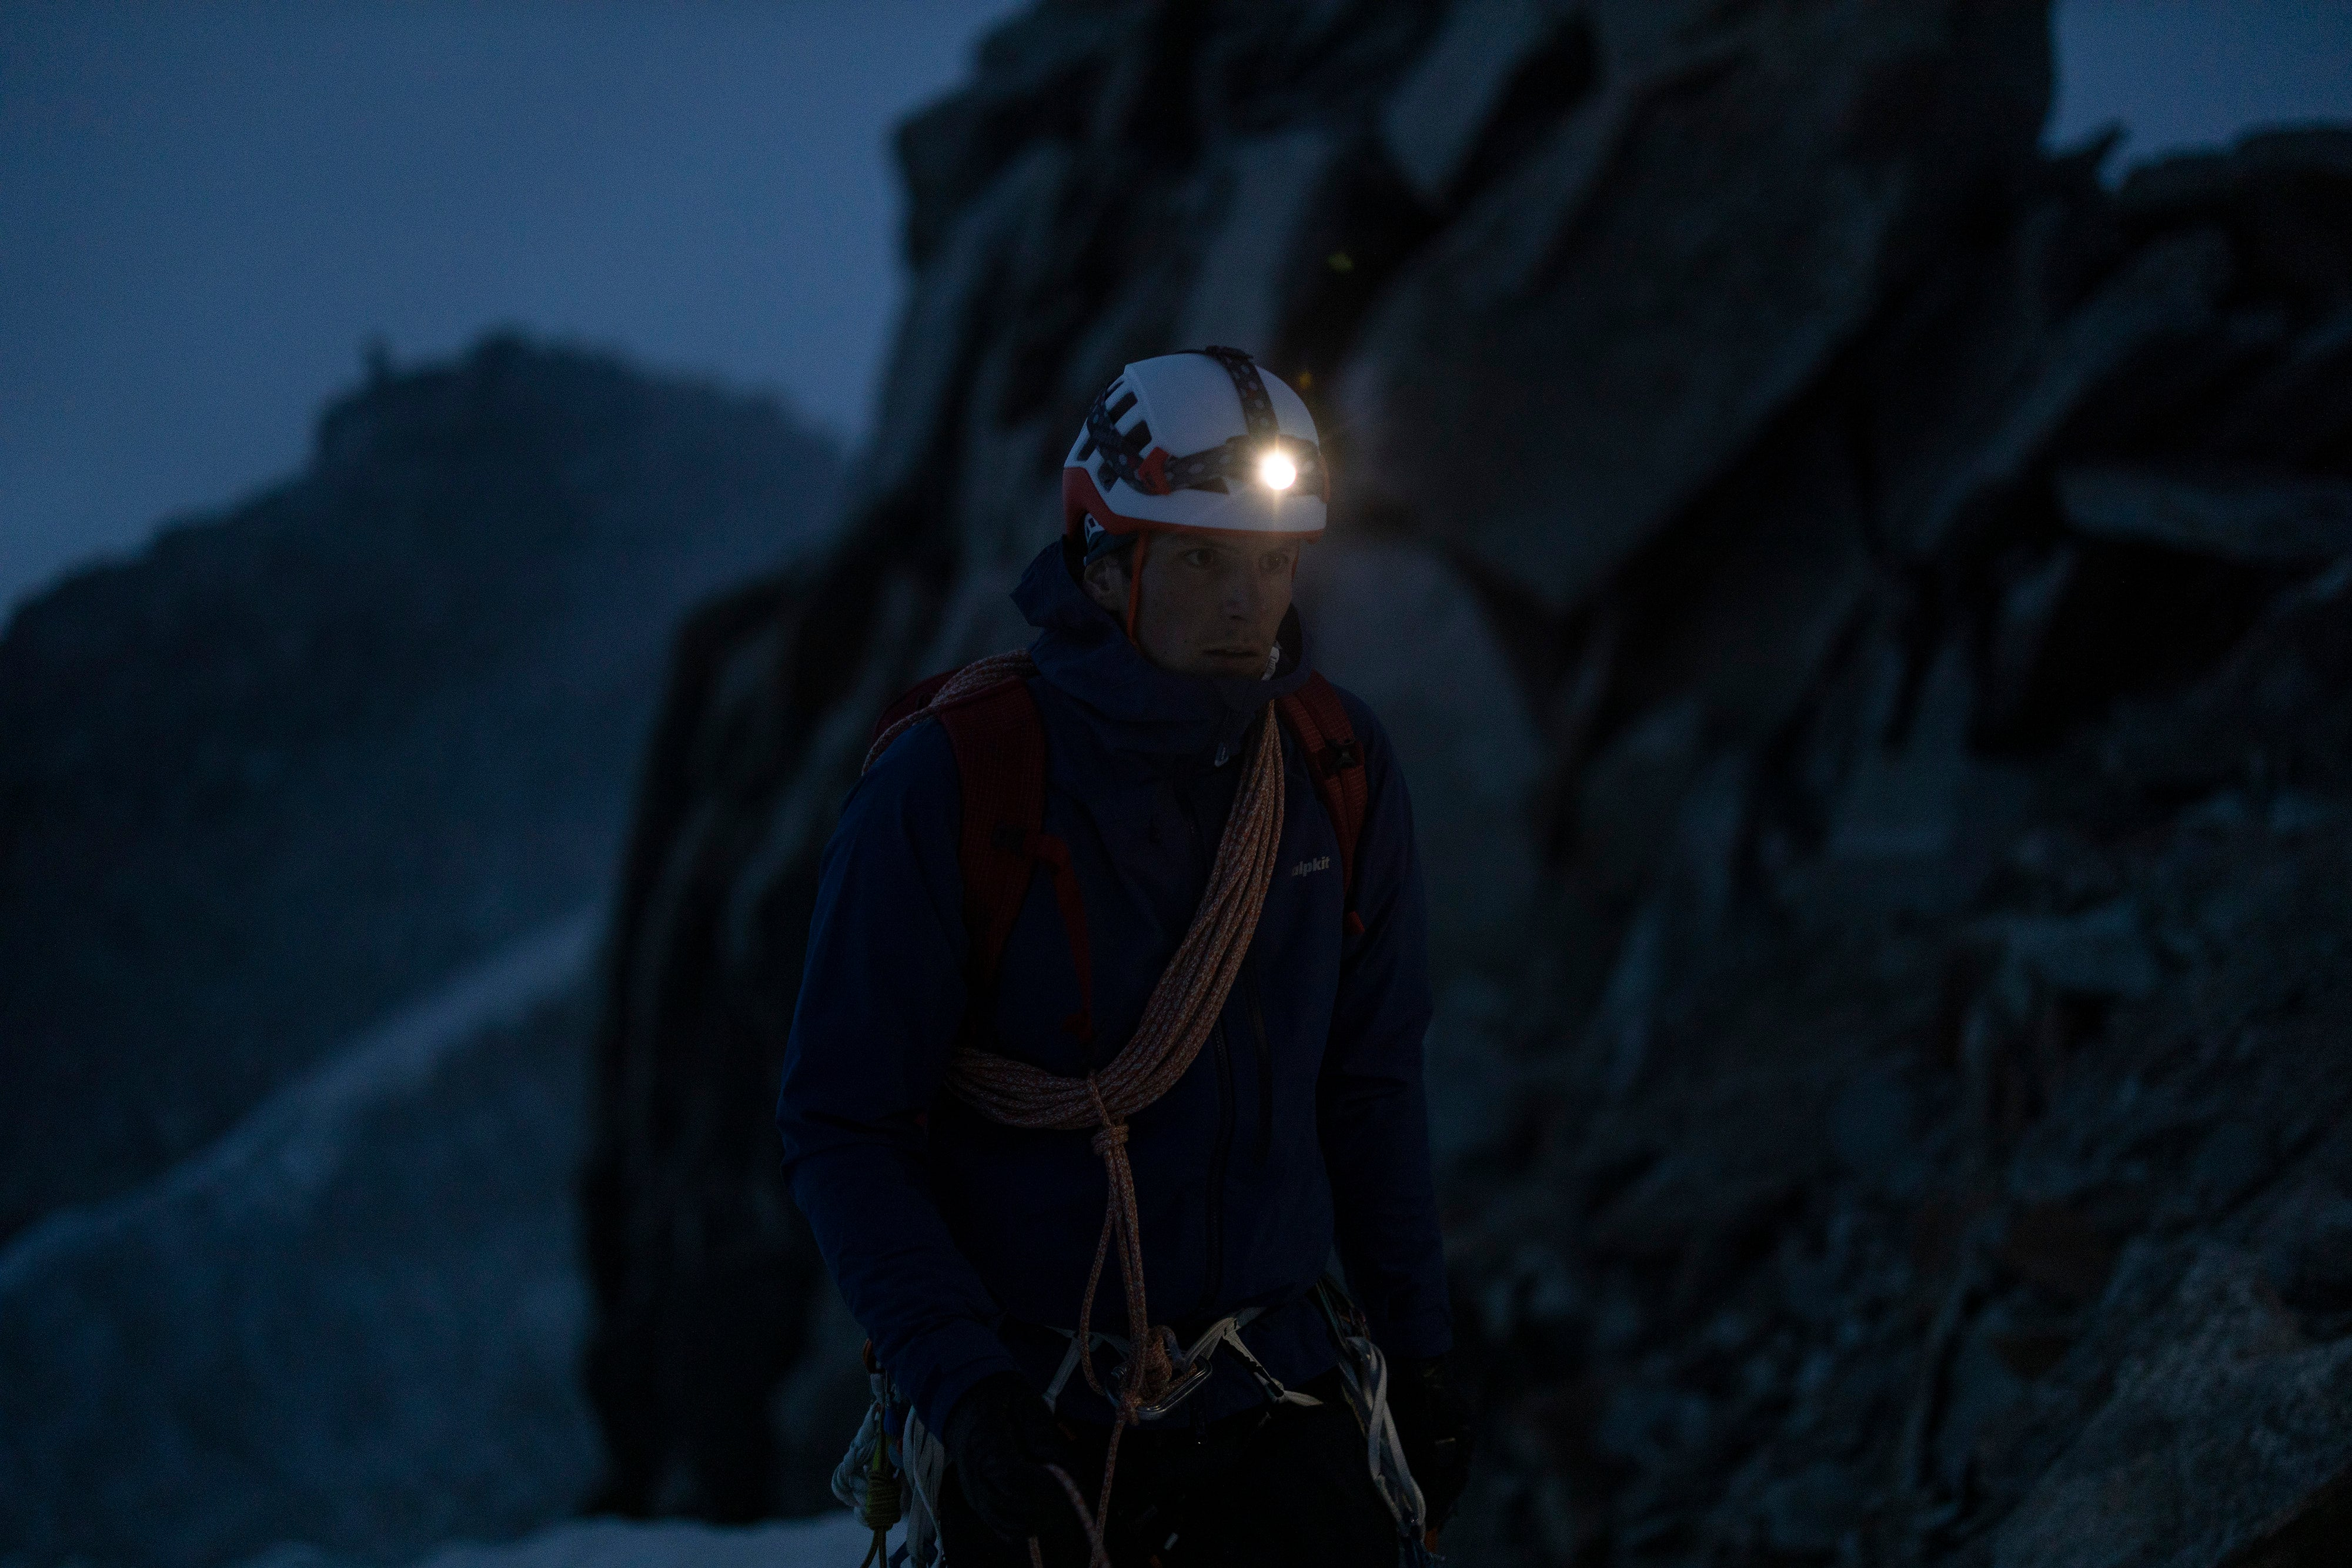 A man with a headtorch strapped over his climbing helmet